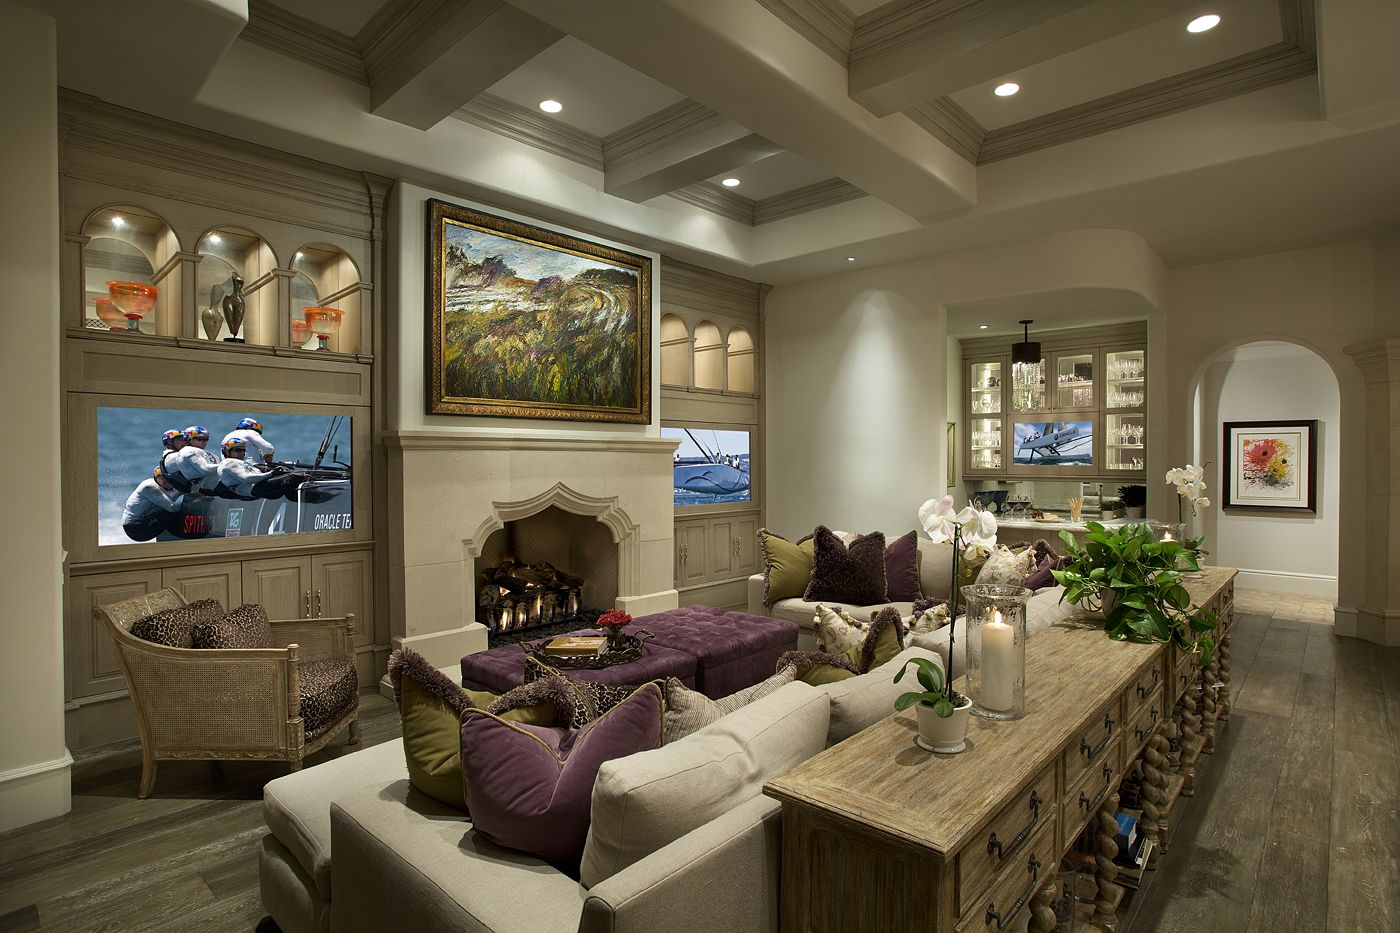 Contemporary Modern Living Room With Two Televisions On Either Side Of The Fireplace Cozy Hom Cozy Interior Design Living Room Designs Country Interior Design